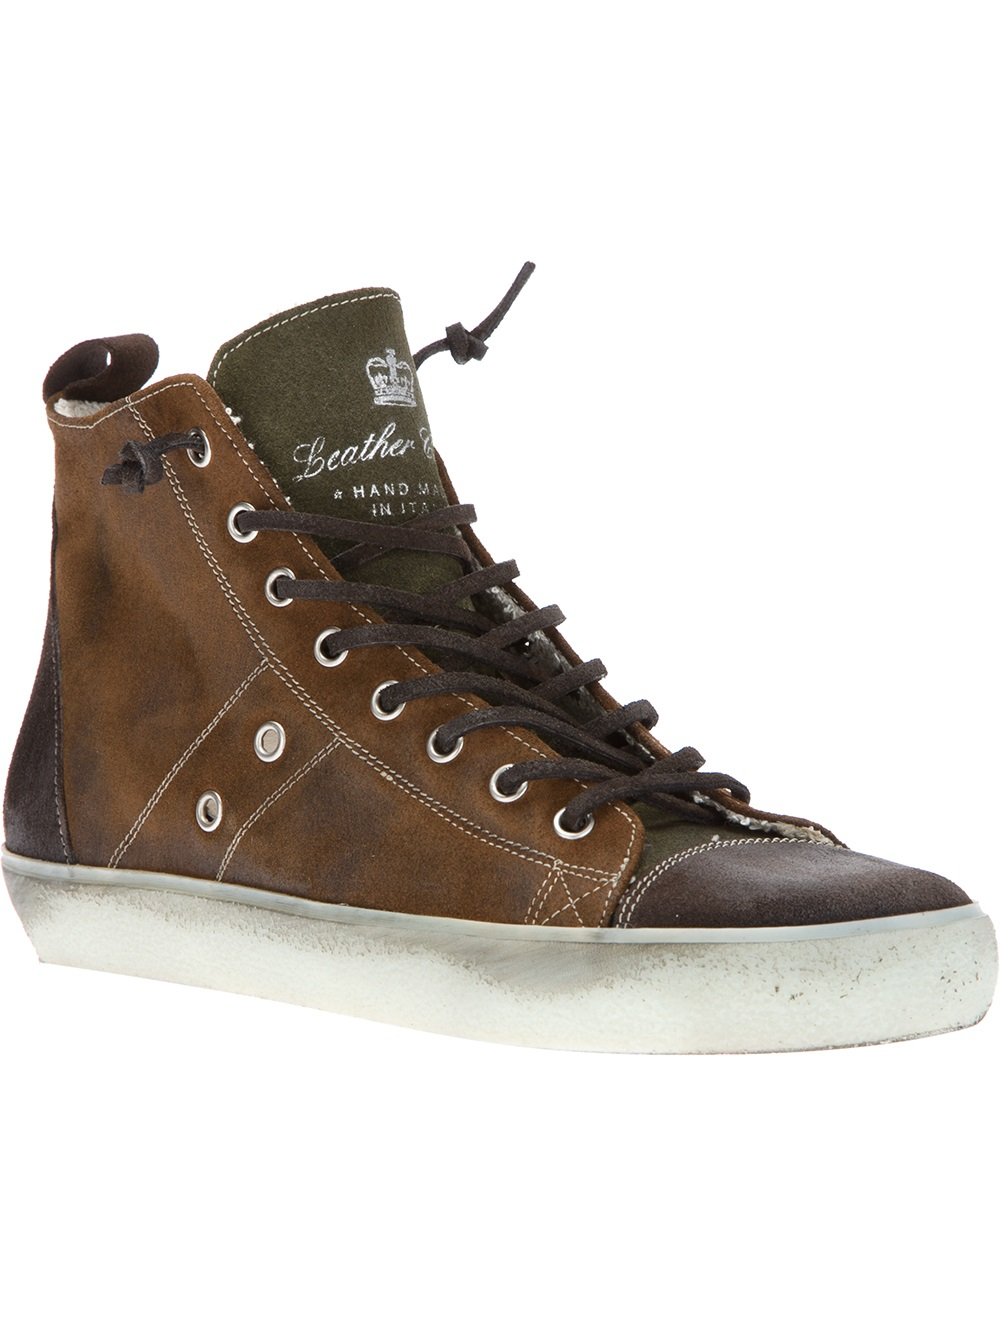 Free shipping BOTH ways on leather sneakers, from our vast selection of styles. Fast delivery, and 24/7/ real-person service with a smile. Click or call